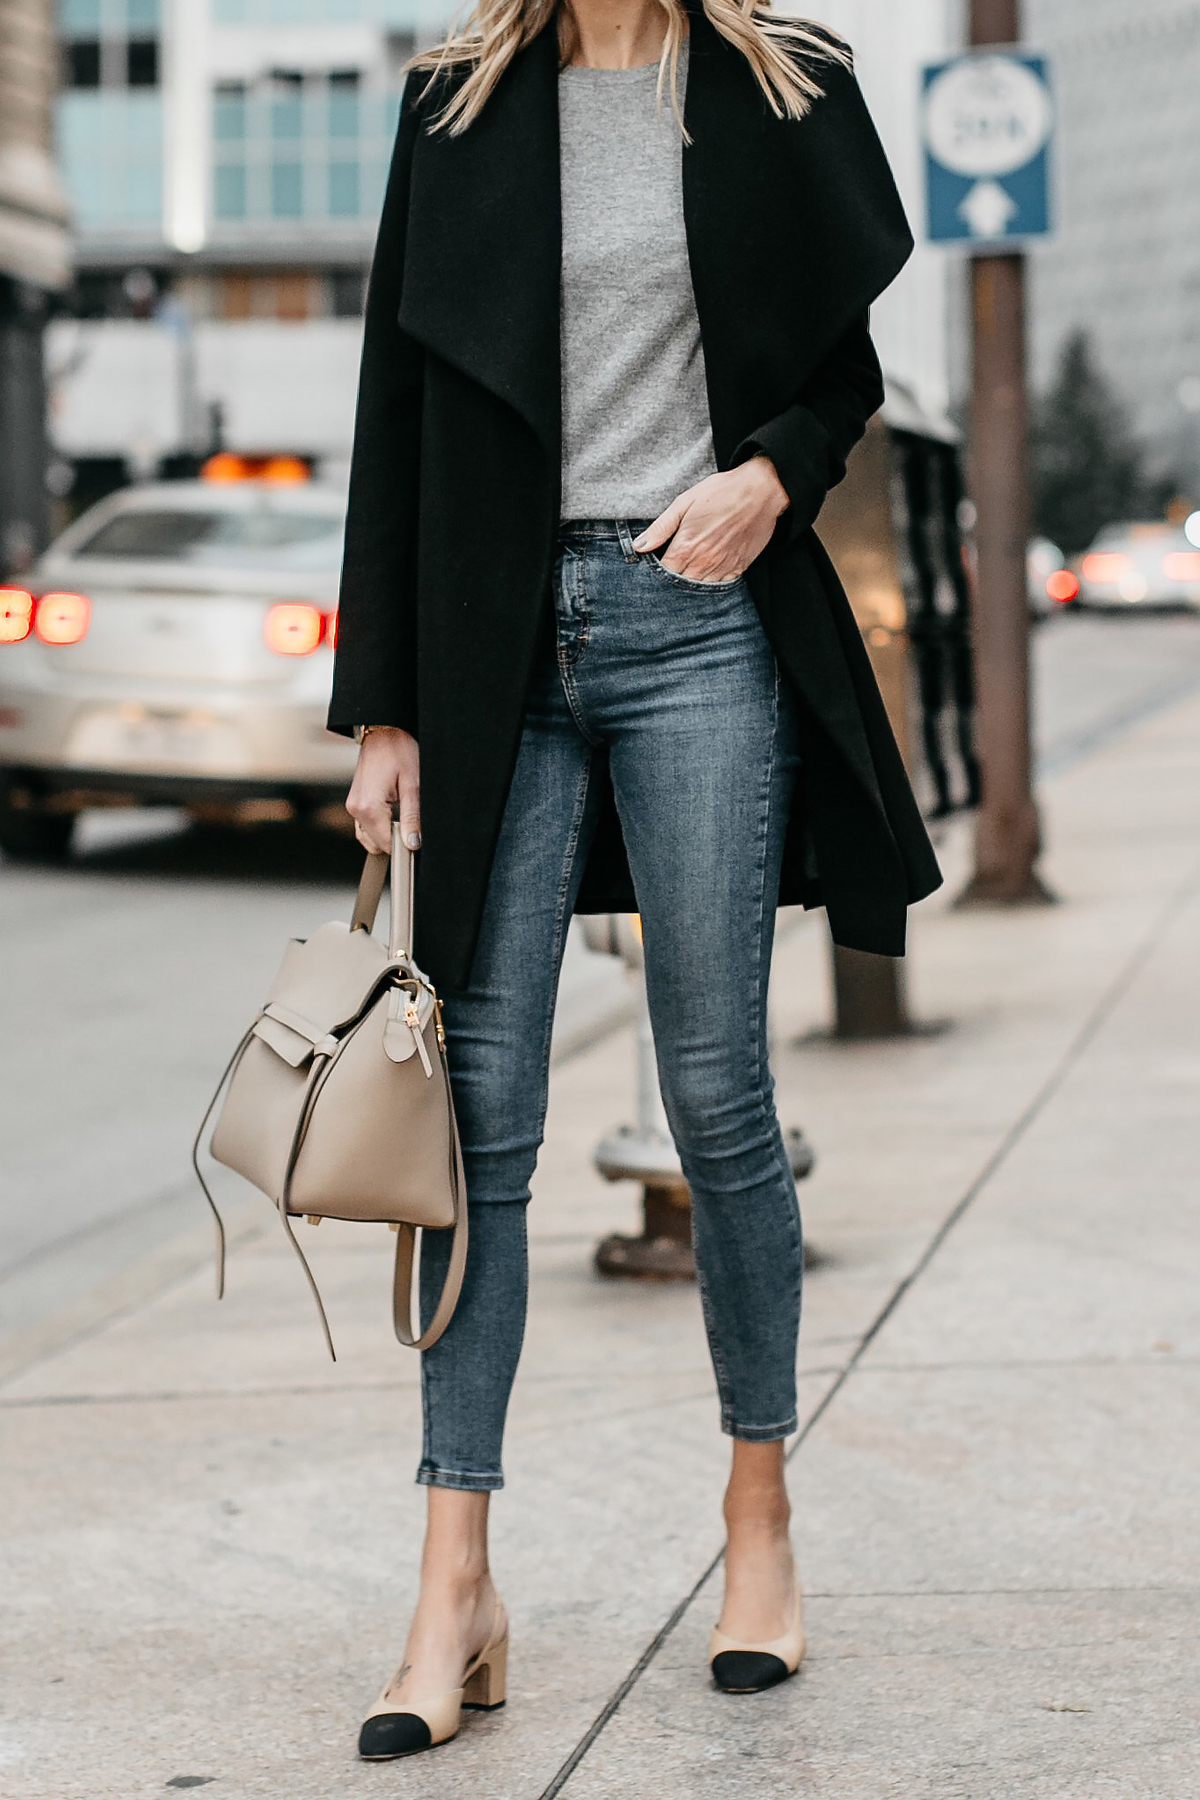 Black Wrap Coat Grey Sweater Denim Skinny Jeans Chanel Slingbacks Celine MIni Belt Bag Fashion Jackson Dallas Blogger Fashion Blogger Street Style